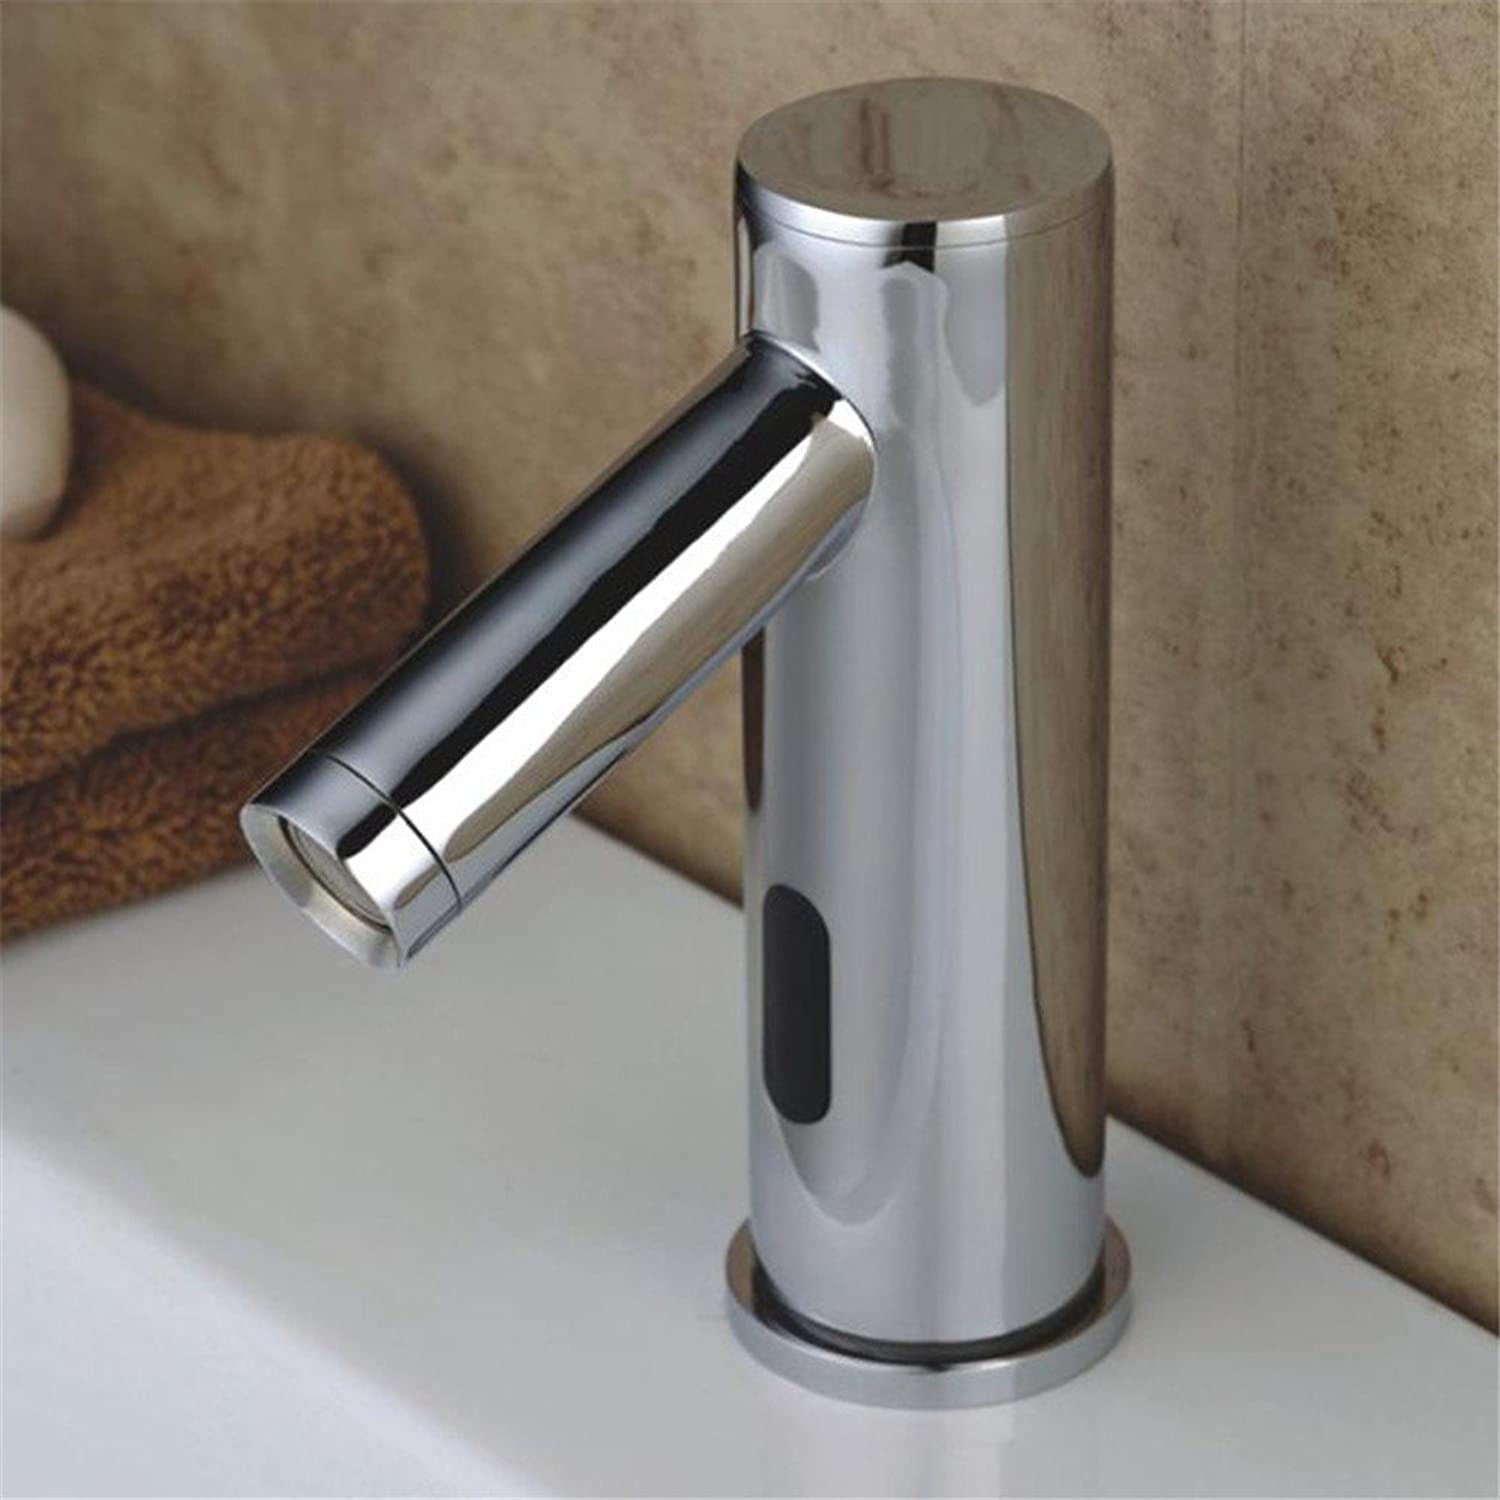 Modern silver brass????sensor solenoid valve hands-free one hole???intelligent induction single cold bathroom basin faucet   Bathroom Sink Taps   Basin Mixer Tap  Bathroom Tap  Bathroom Mixer  Bathroom Basin Mixer Tap   Sink Taps